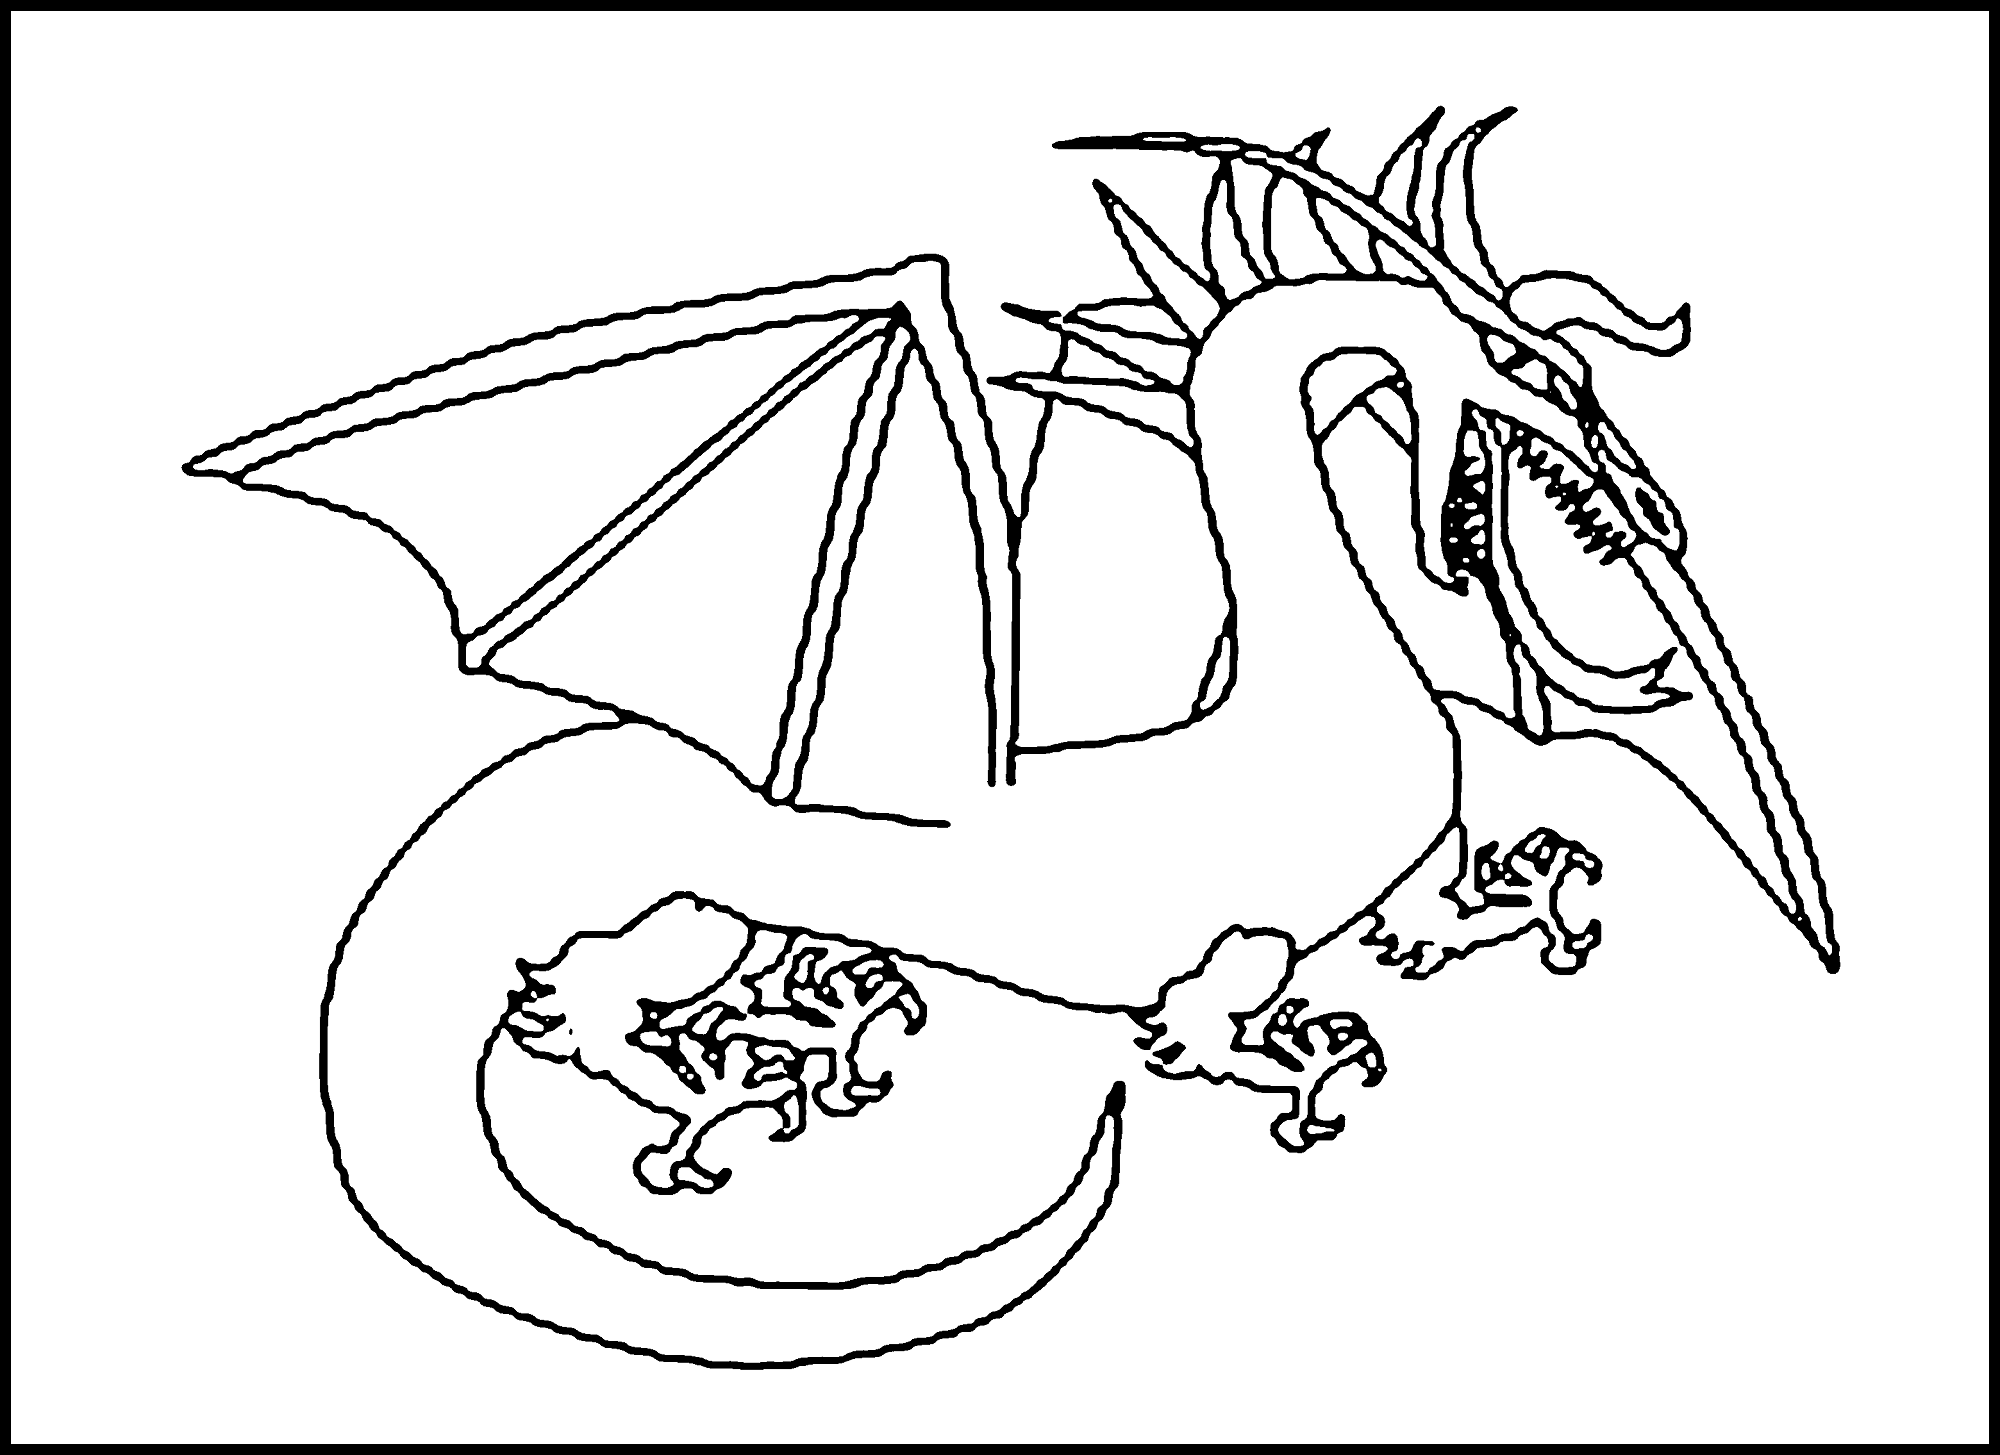 coloring dragons cool dragon coloring pages ideas dragons coloring